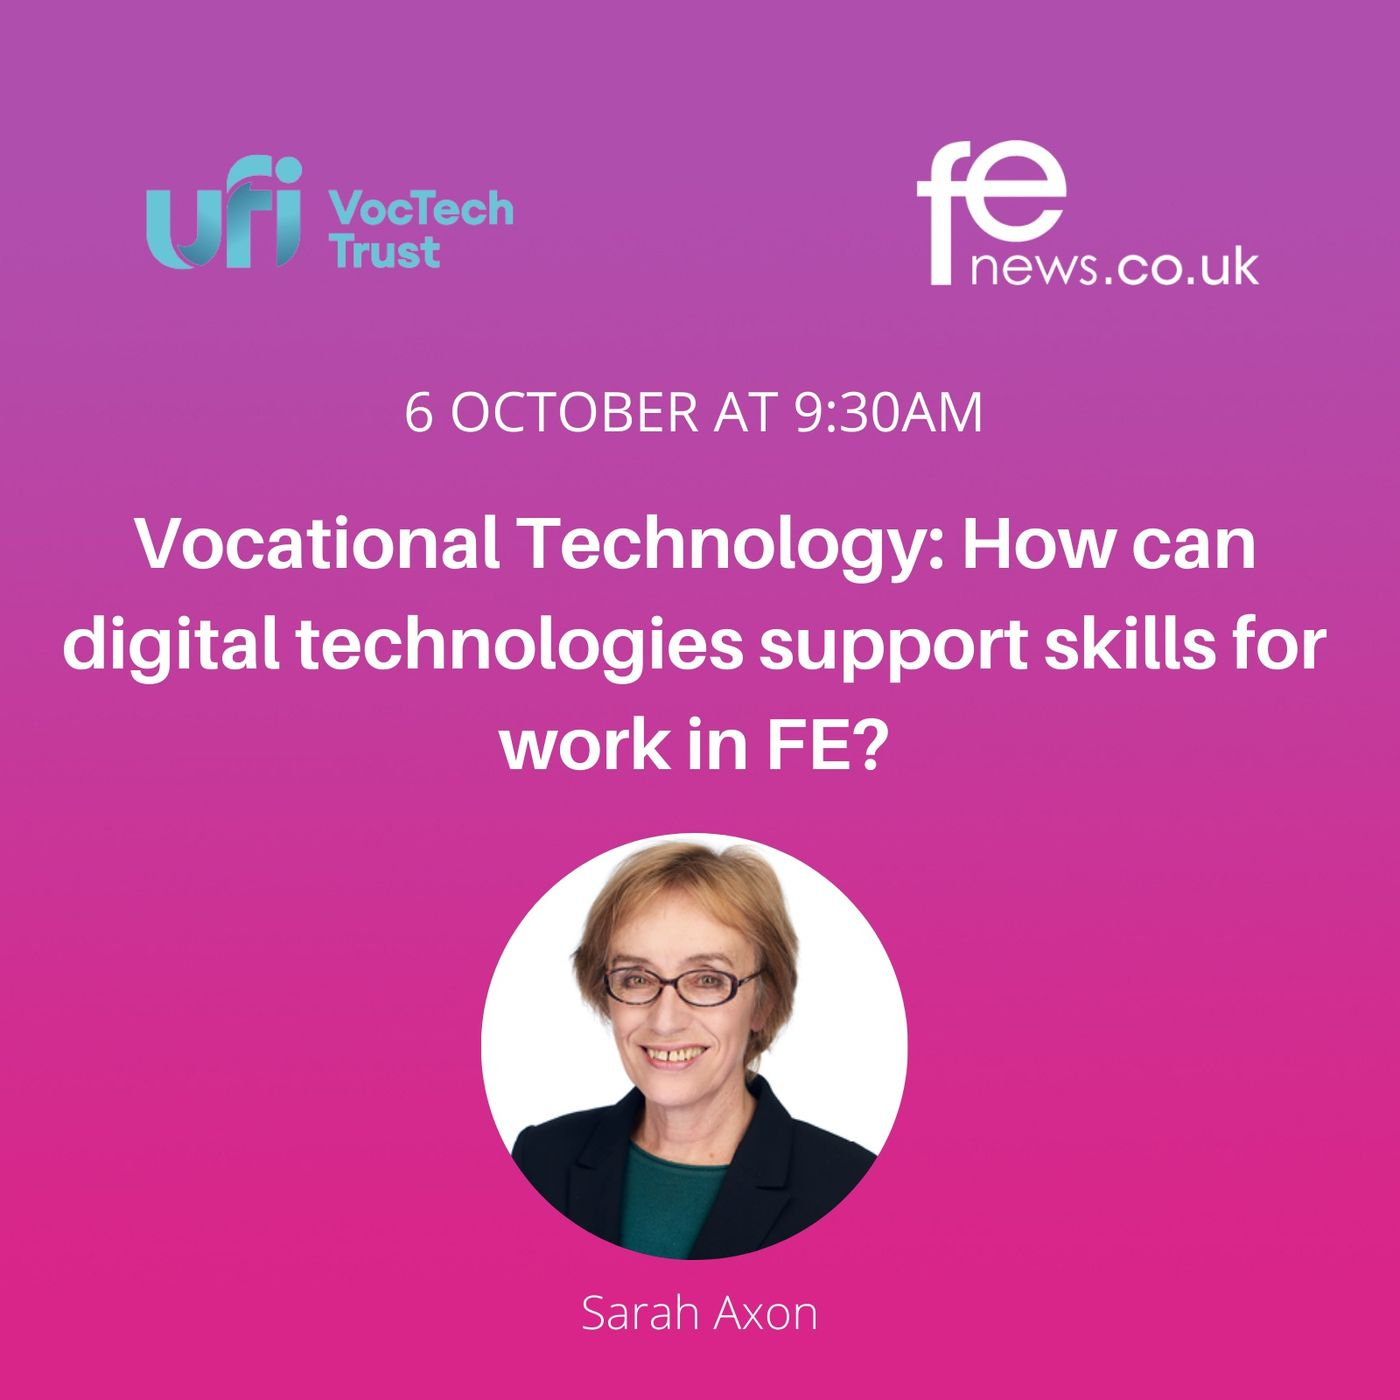 How can digital technologies support skills for work in FE?